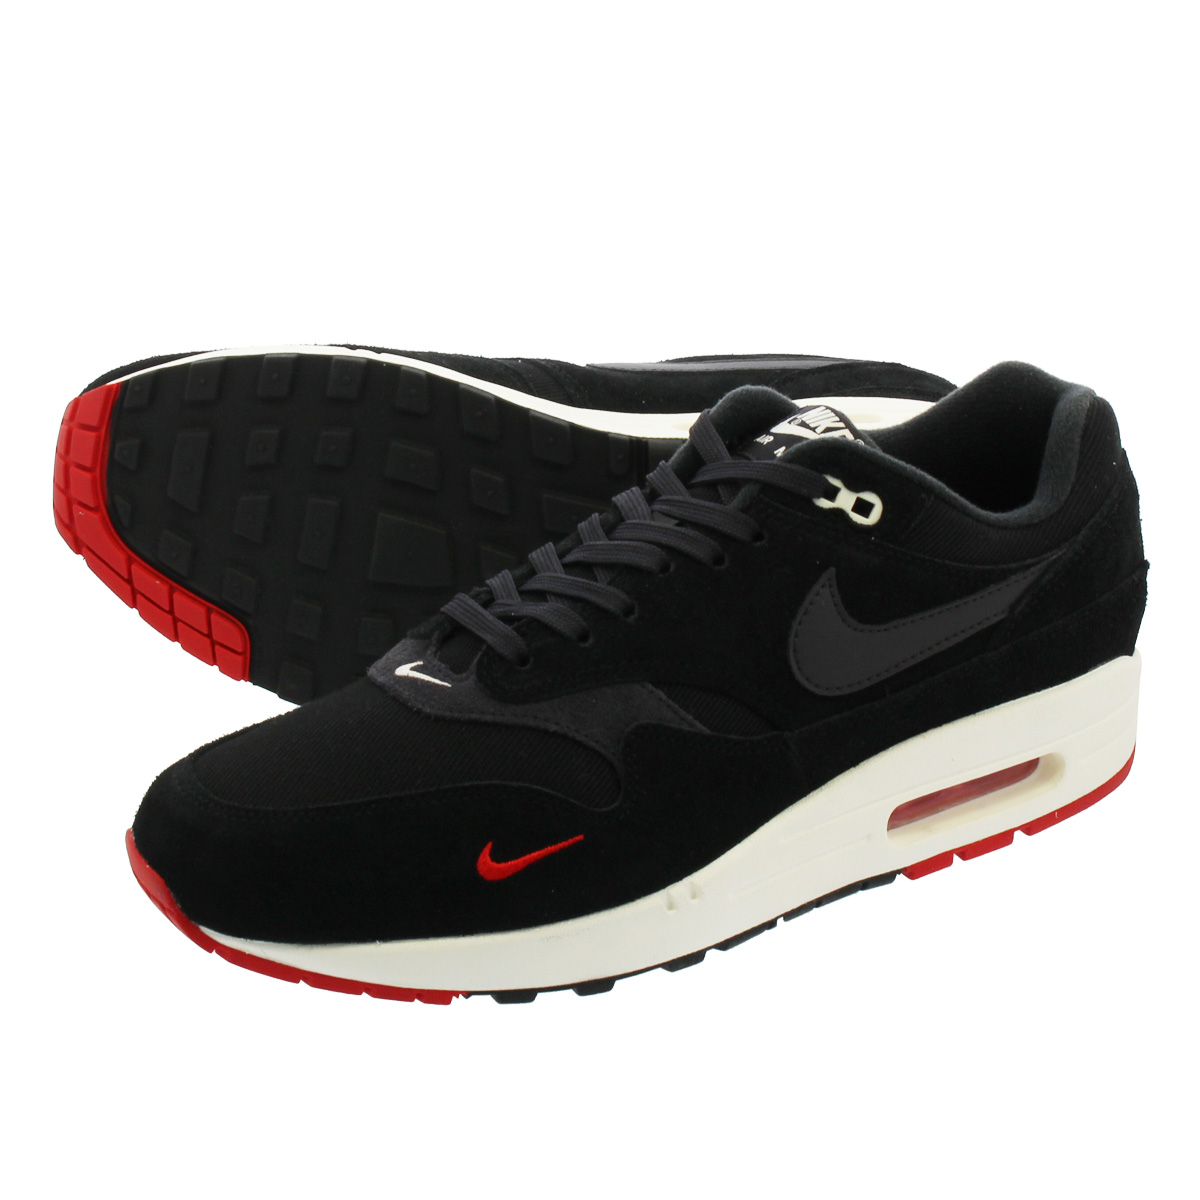 brand new 8f130 caeac NIKE AIR MAX 1 PREMIUM Kie Ney AMAX 1 premium BLACK OIL GREY UNIVERSITY  RED SAIL 875,844-007